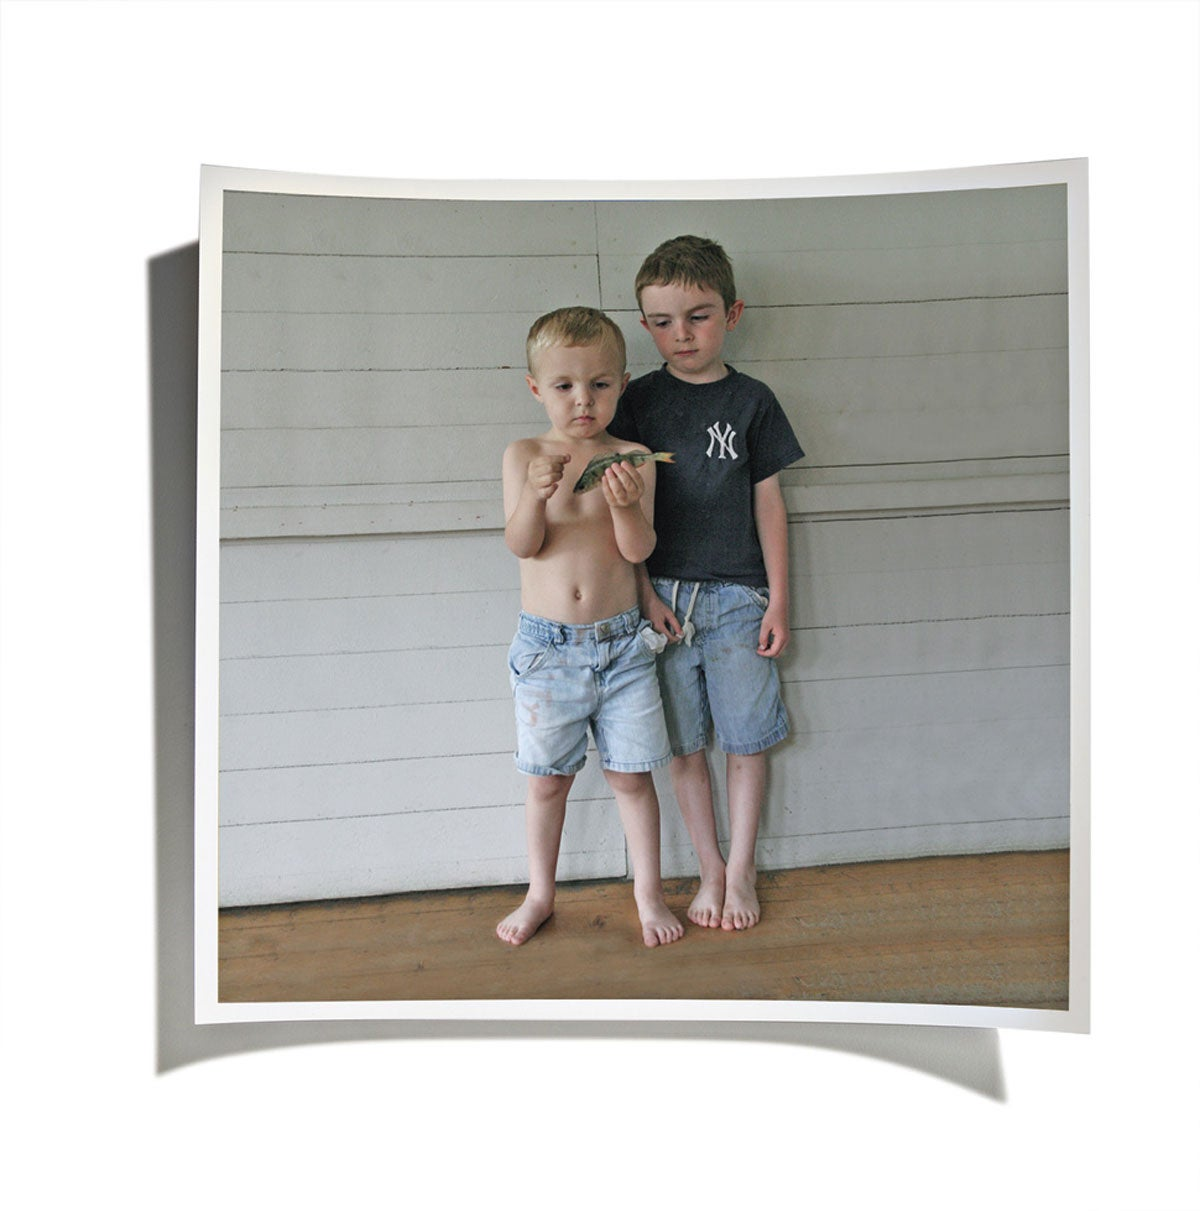 Two young boys holding a fish on a front porch.